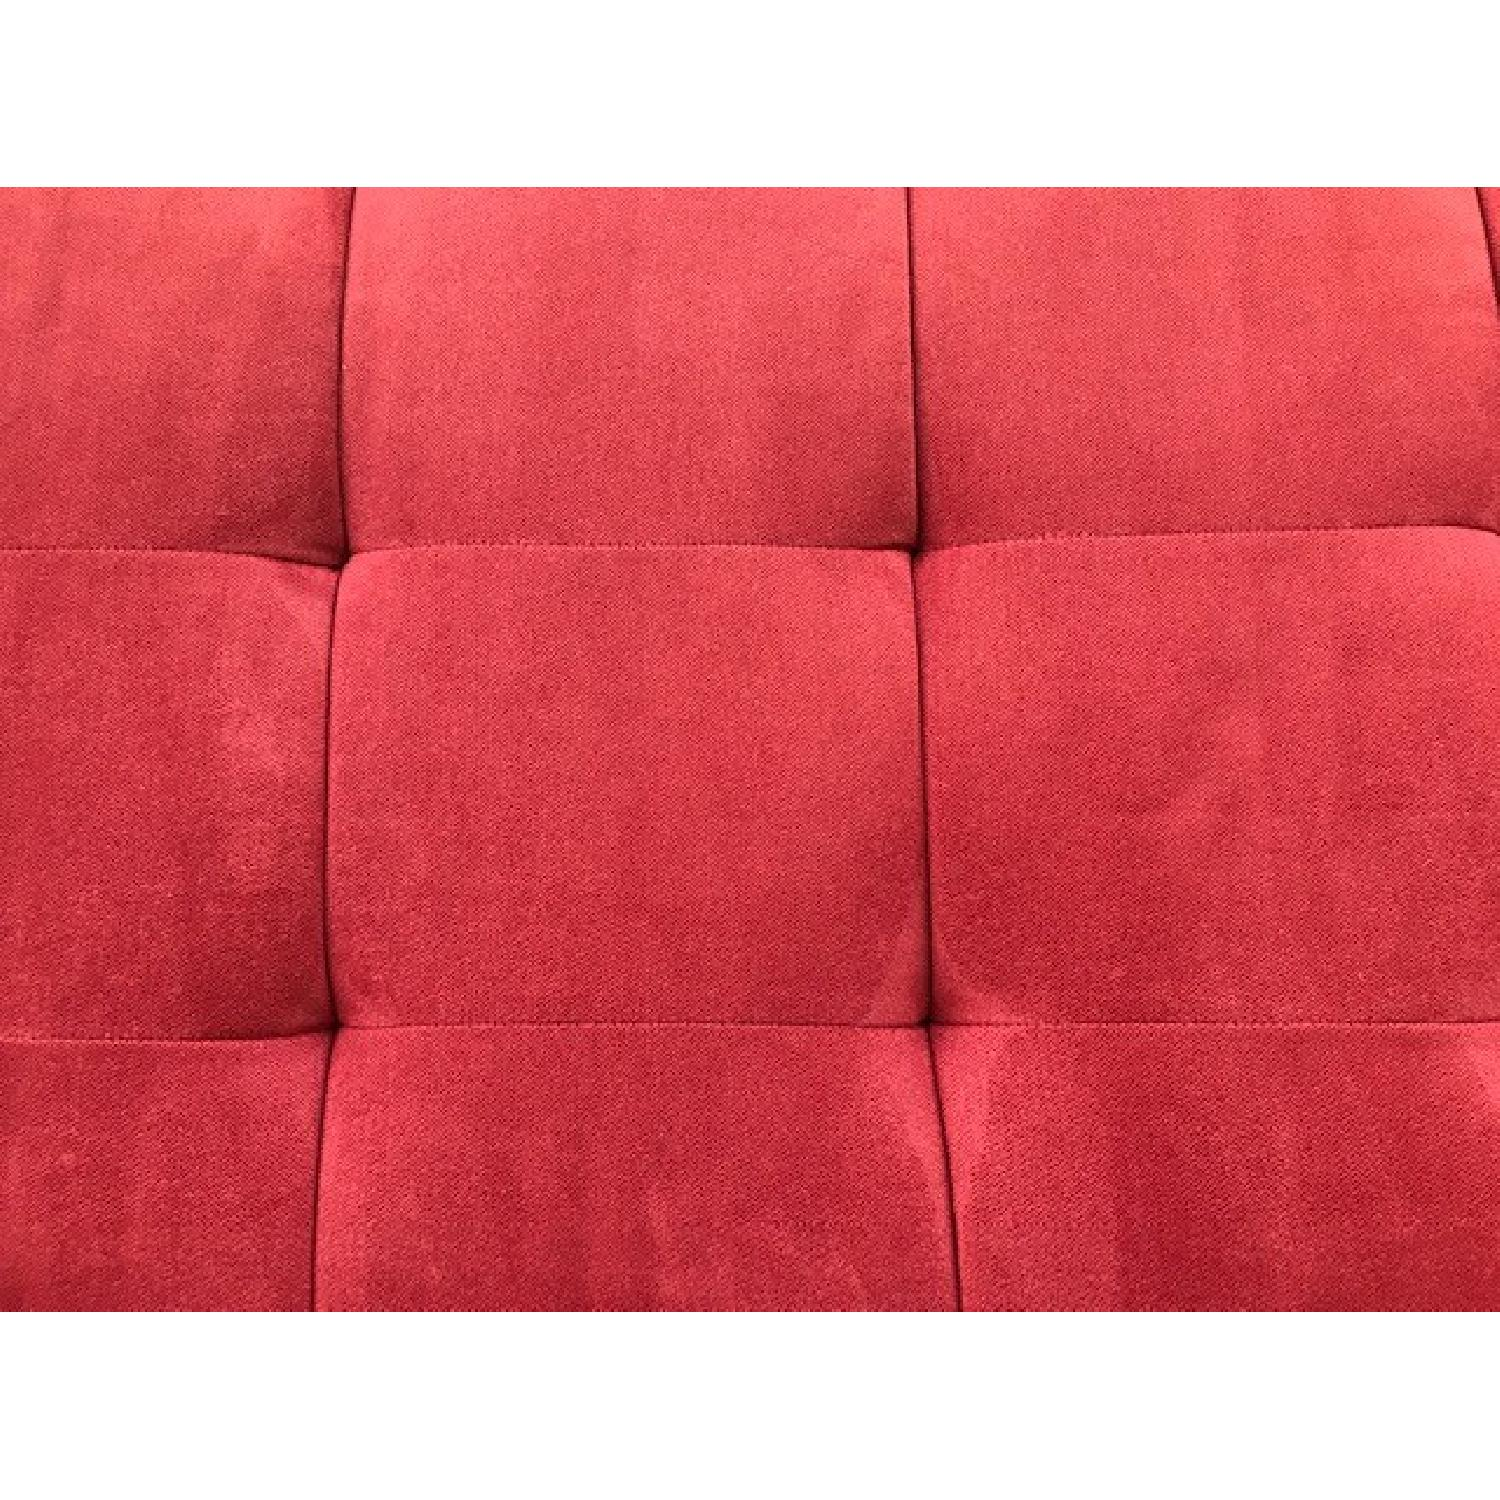 Macy's Max Home Amalfi Red Microfiber Chaise/Daybed - image-7